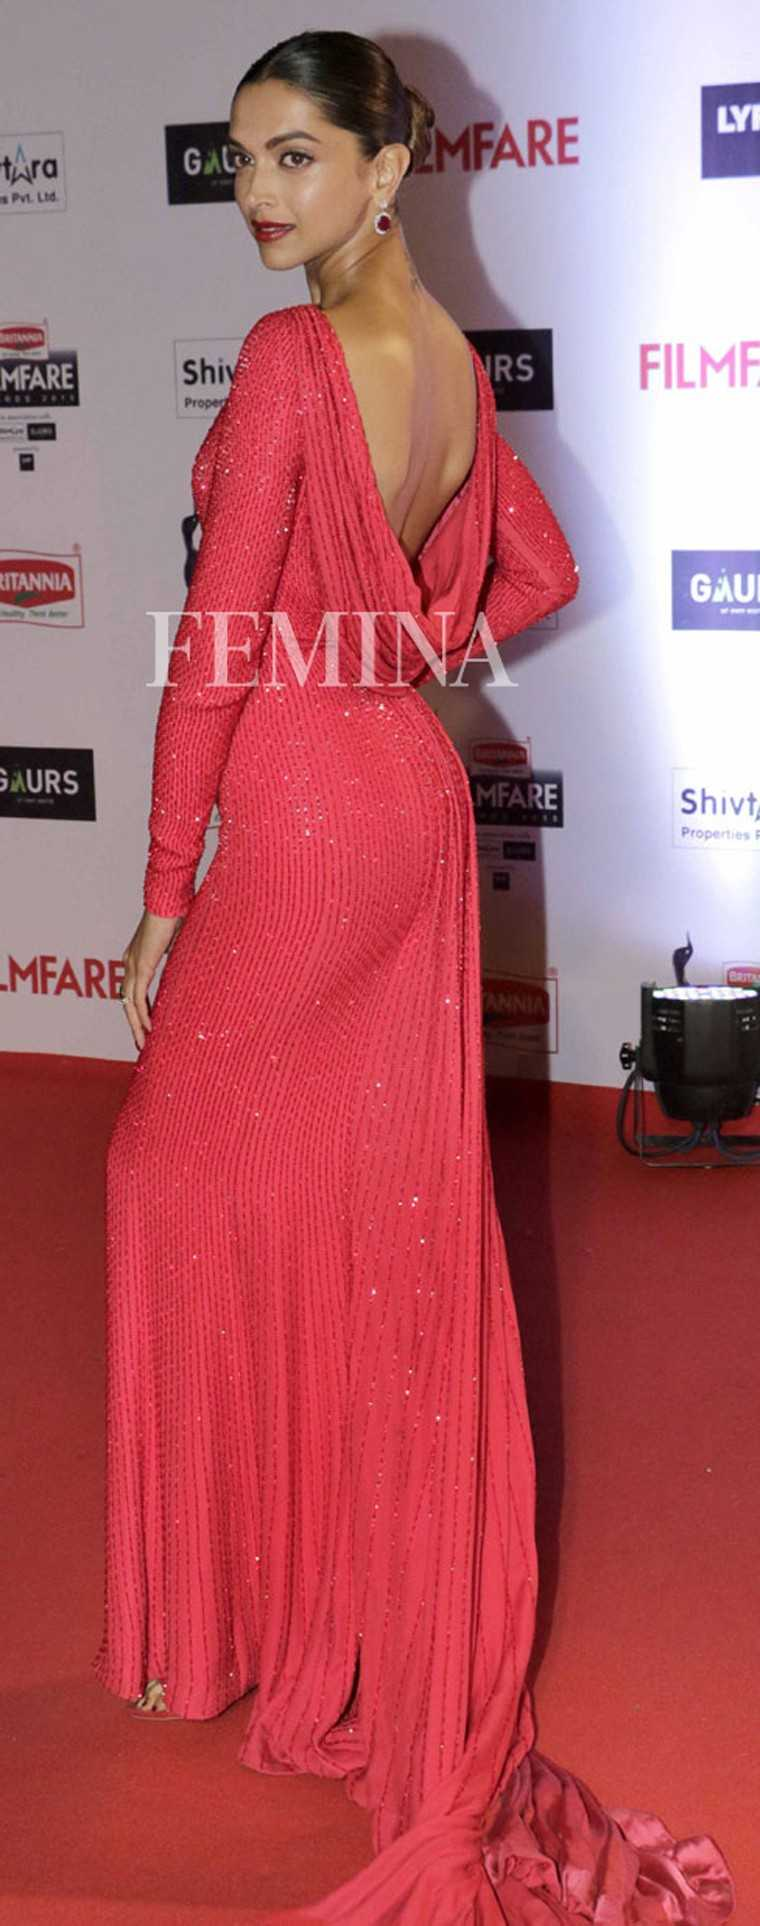 Deepika Padukone accepted her Filmfare award in a shimmering red draped-back gown by Ralph and Russo. She kept the rest of her look fuss-free with a sleek updo and classic drop earrings.